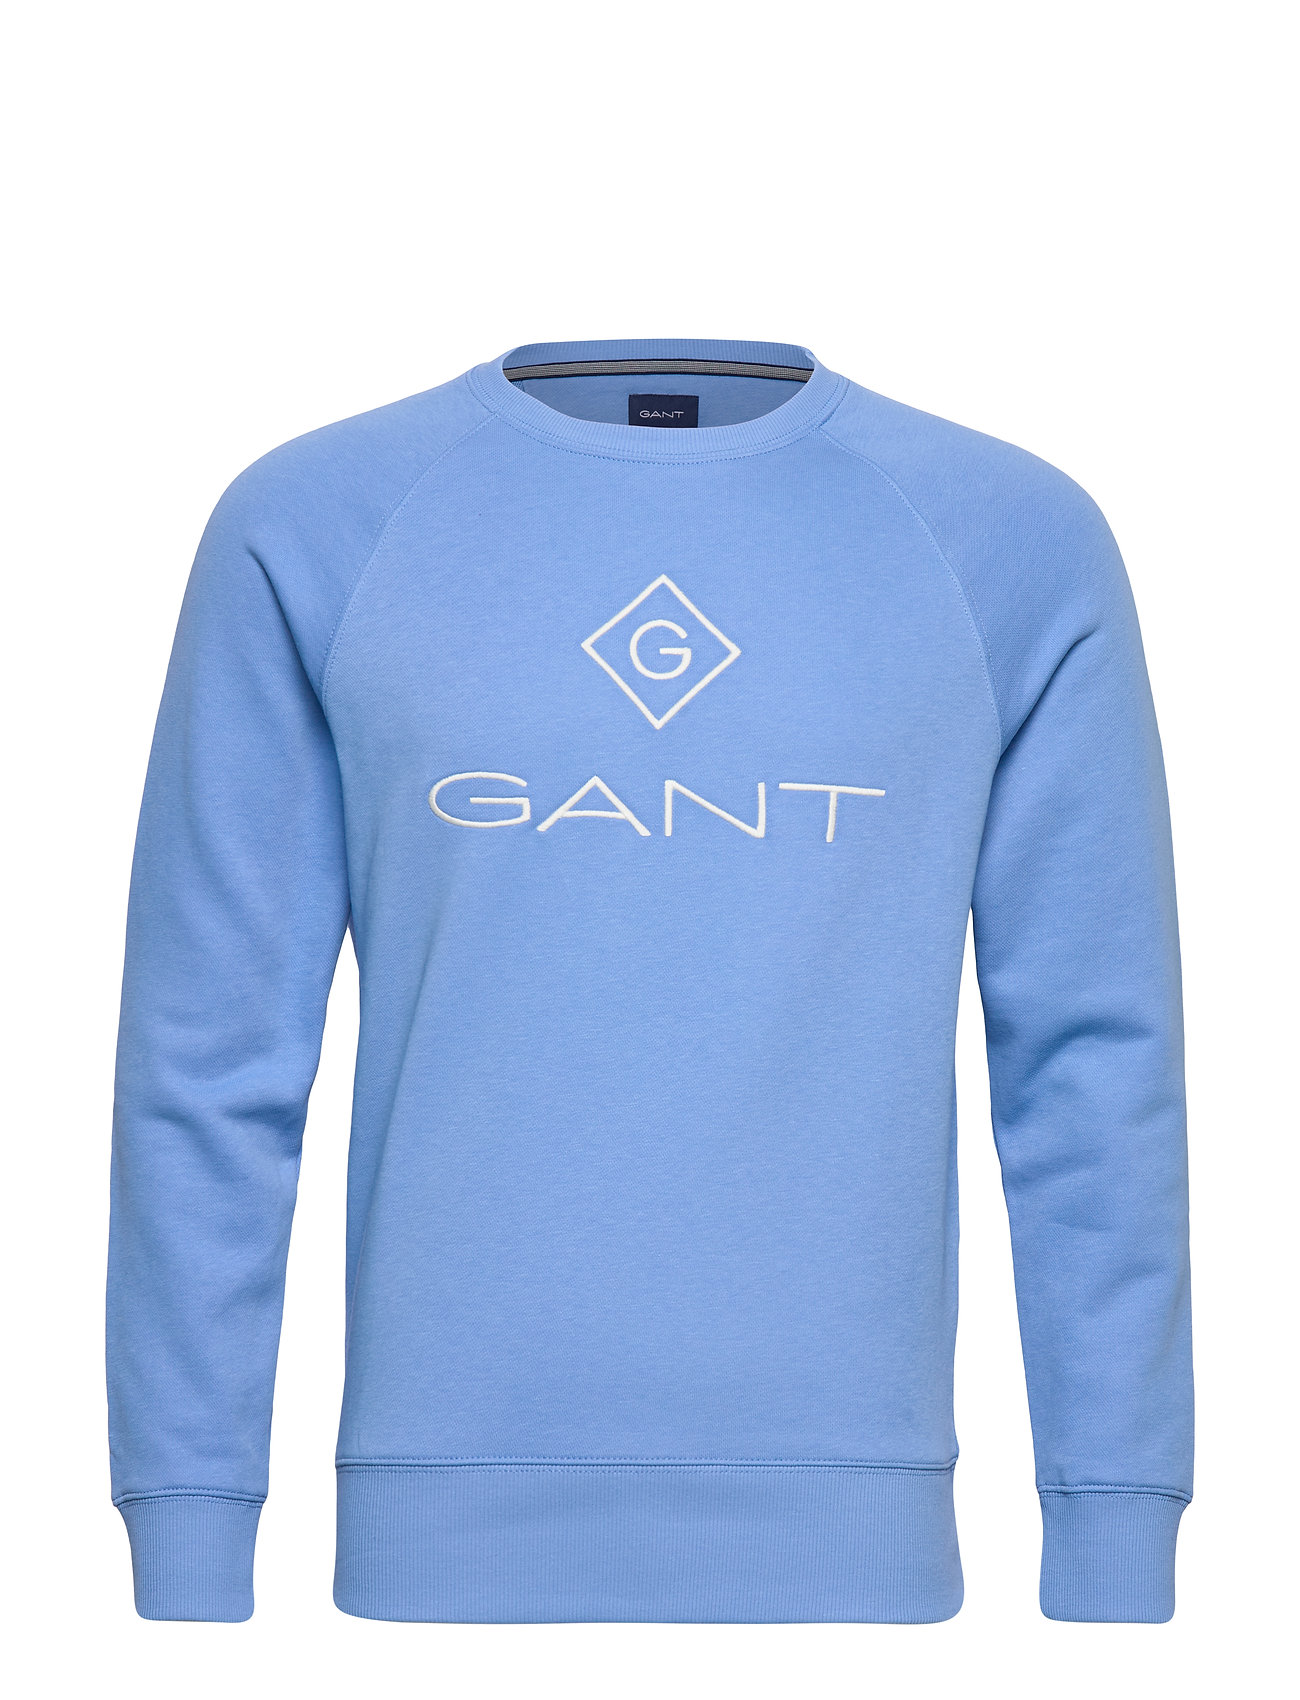 Gant LOCK UP C-NECK SWEAT - PACIFIC BLUE